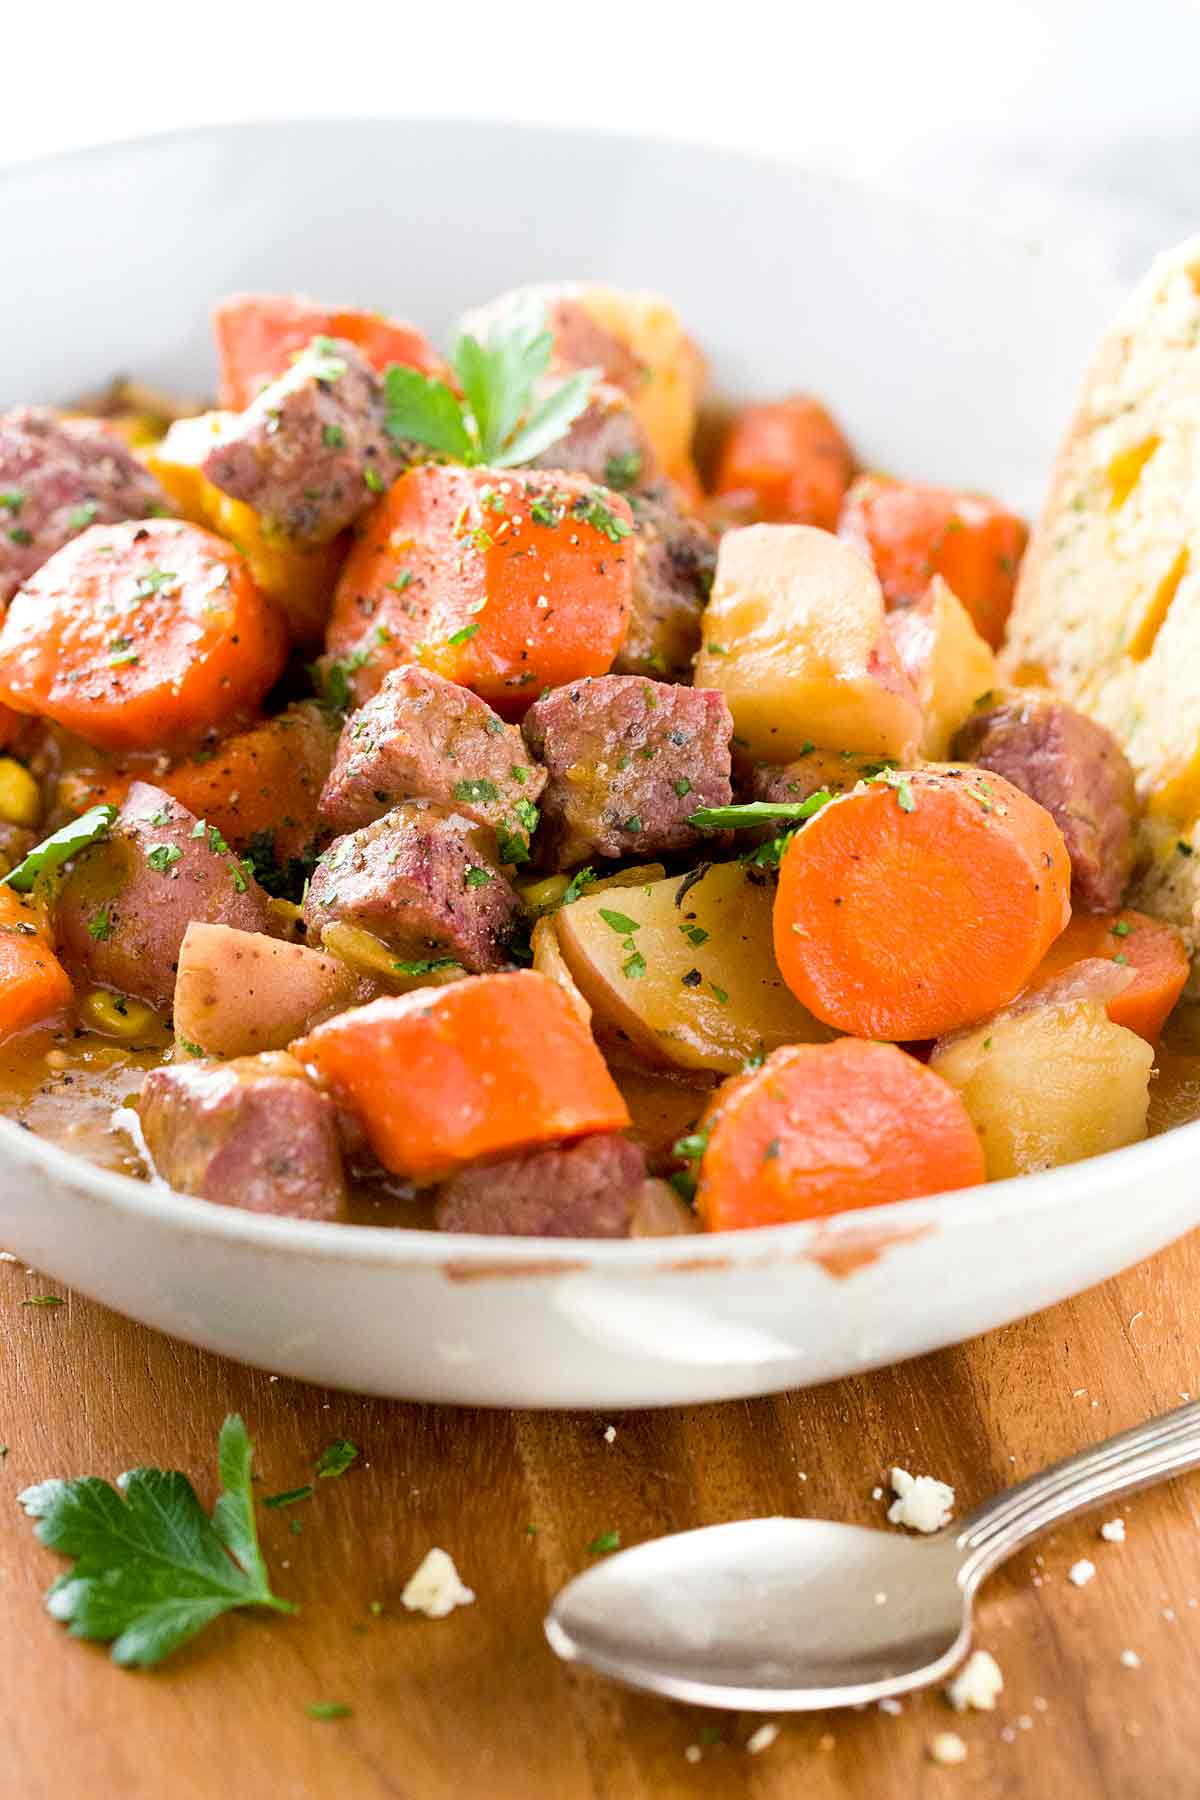 Corned beef and chunks of potatoes and carrots in a bowl